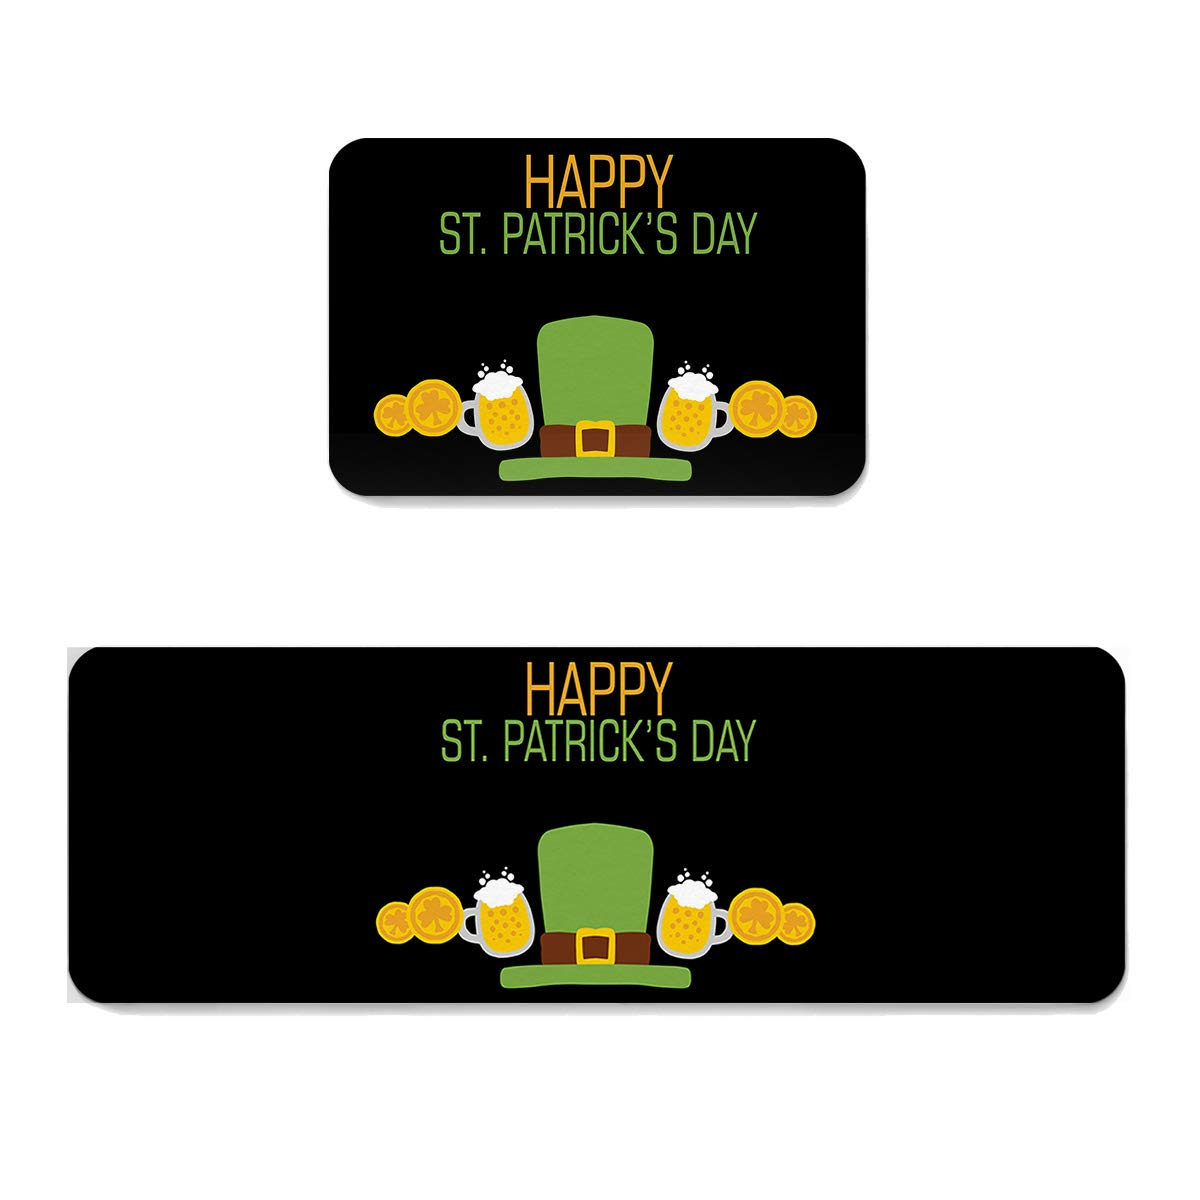 St. Patrick's Day Hat goldfsr8834 19.7  x 31.5 +19.7  x 47.2  Fantasy Star Kitchen Rug Sets 2 Piece Floor Mats Non-Slip Rubber Backing Area Rugs Green Hat and Rainbow Pattern Doormat Washable Carpet Inside Door Mat Pad Sets (23.6  x 35.4 +23.6  x 70.9 )